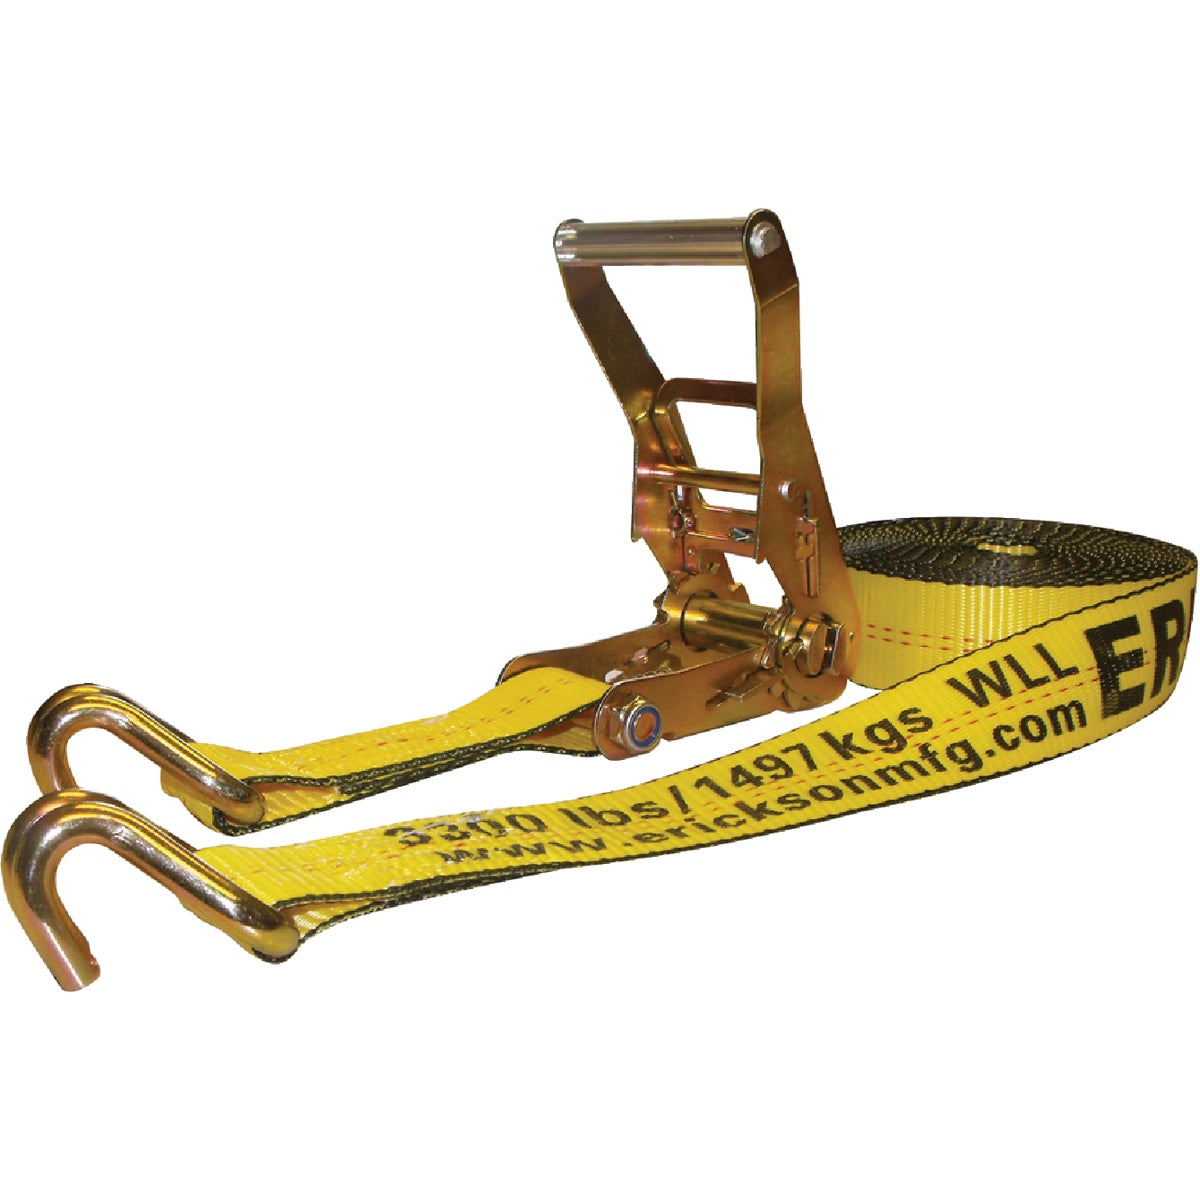 "2""X27' DBL JHOOK RATCHET - 78627 by Erickson Mfg Ltd"